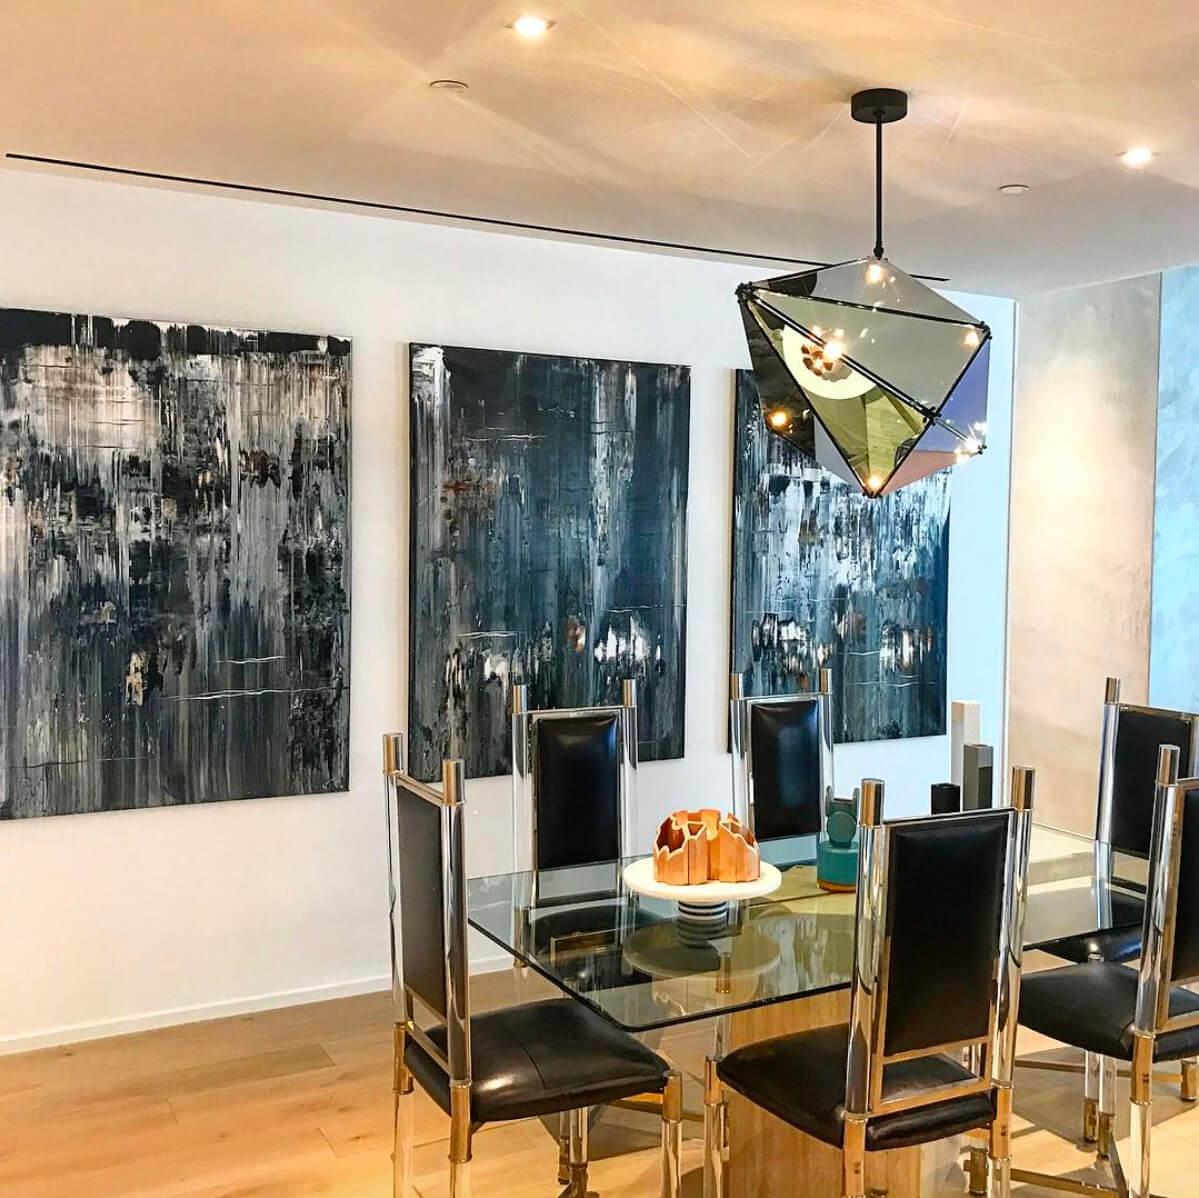 installation view at 121 East 22nd New York (Toll Brothers City Living)